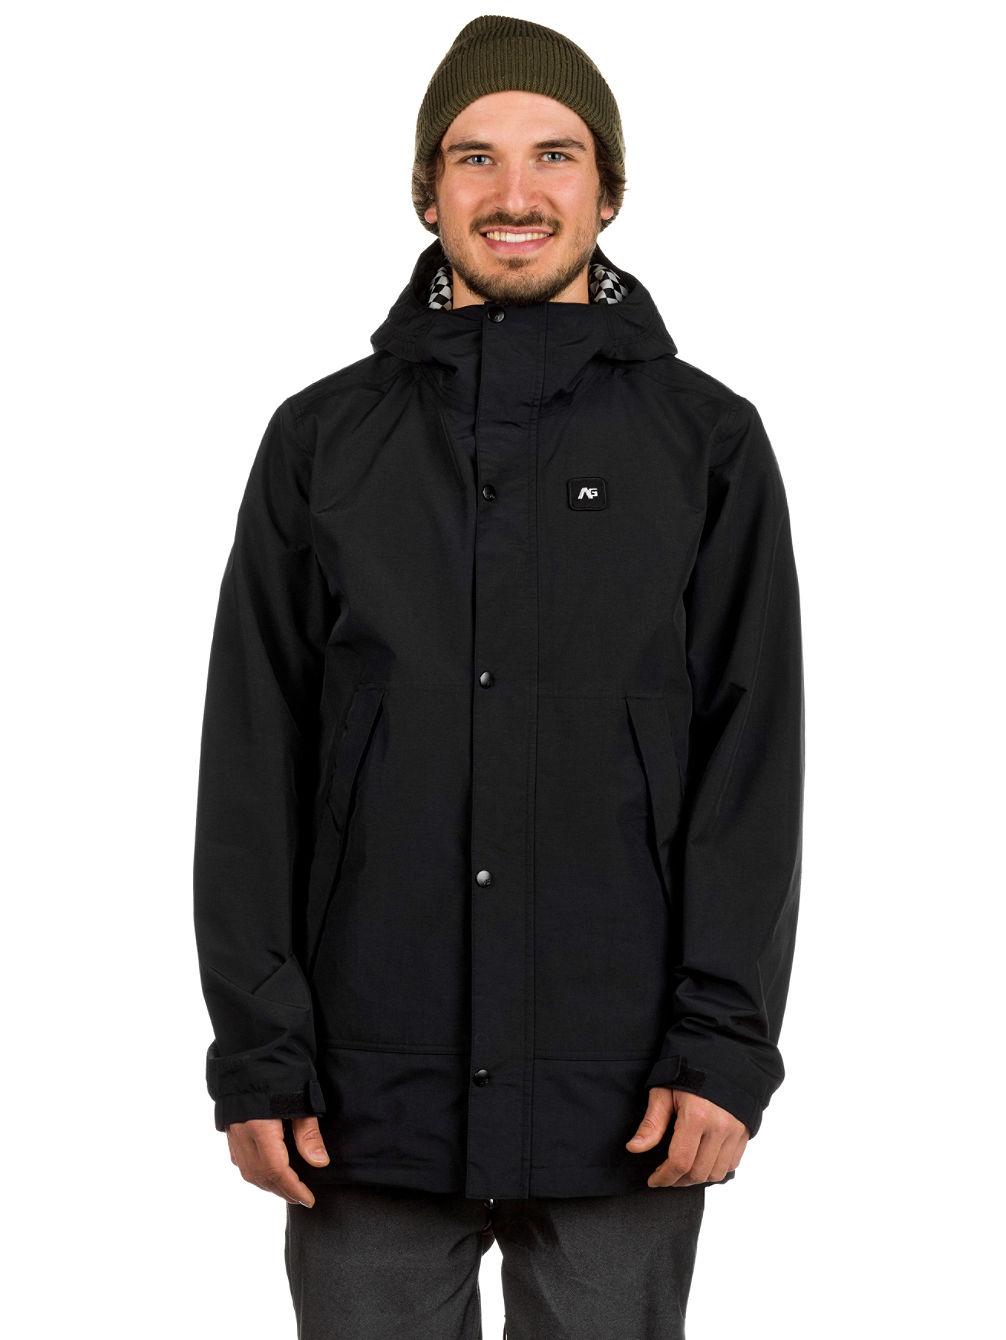 Gore-Tex Contract Jacket